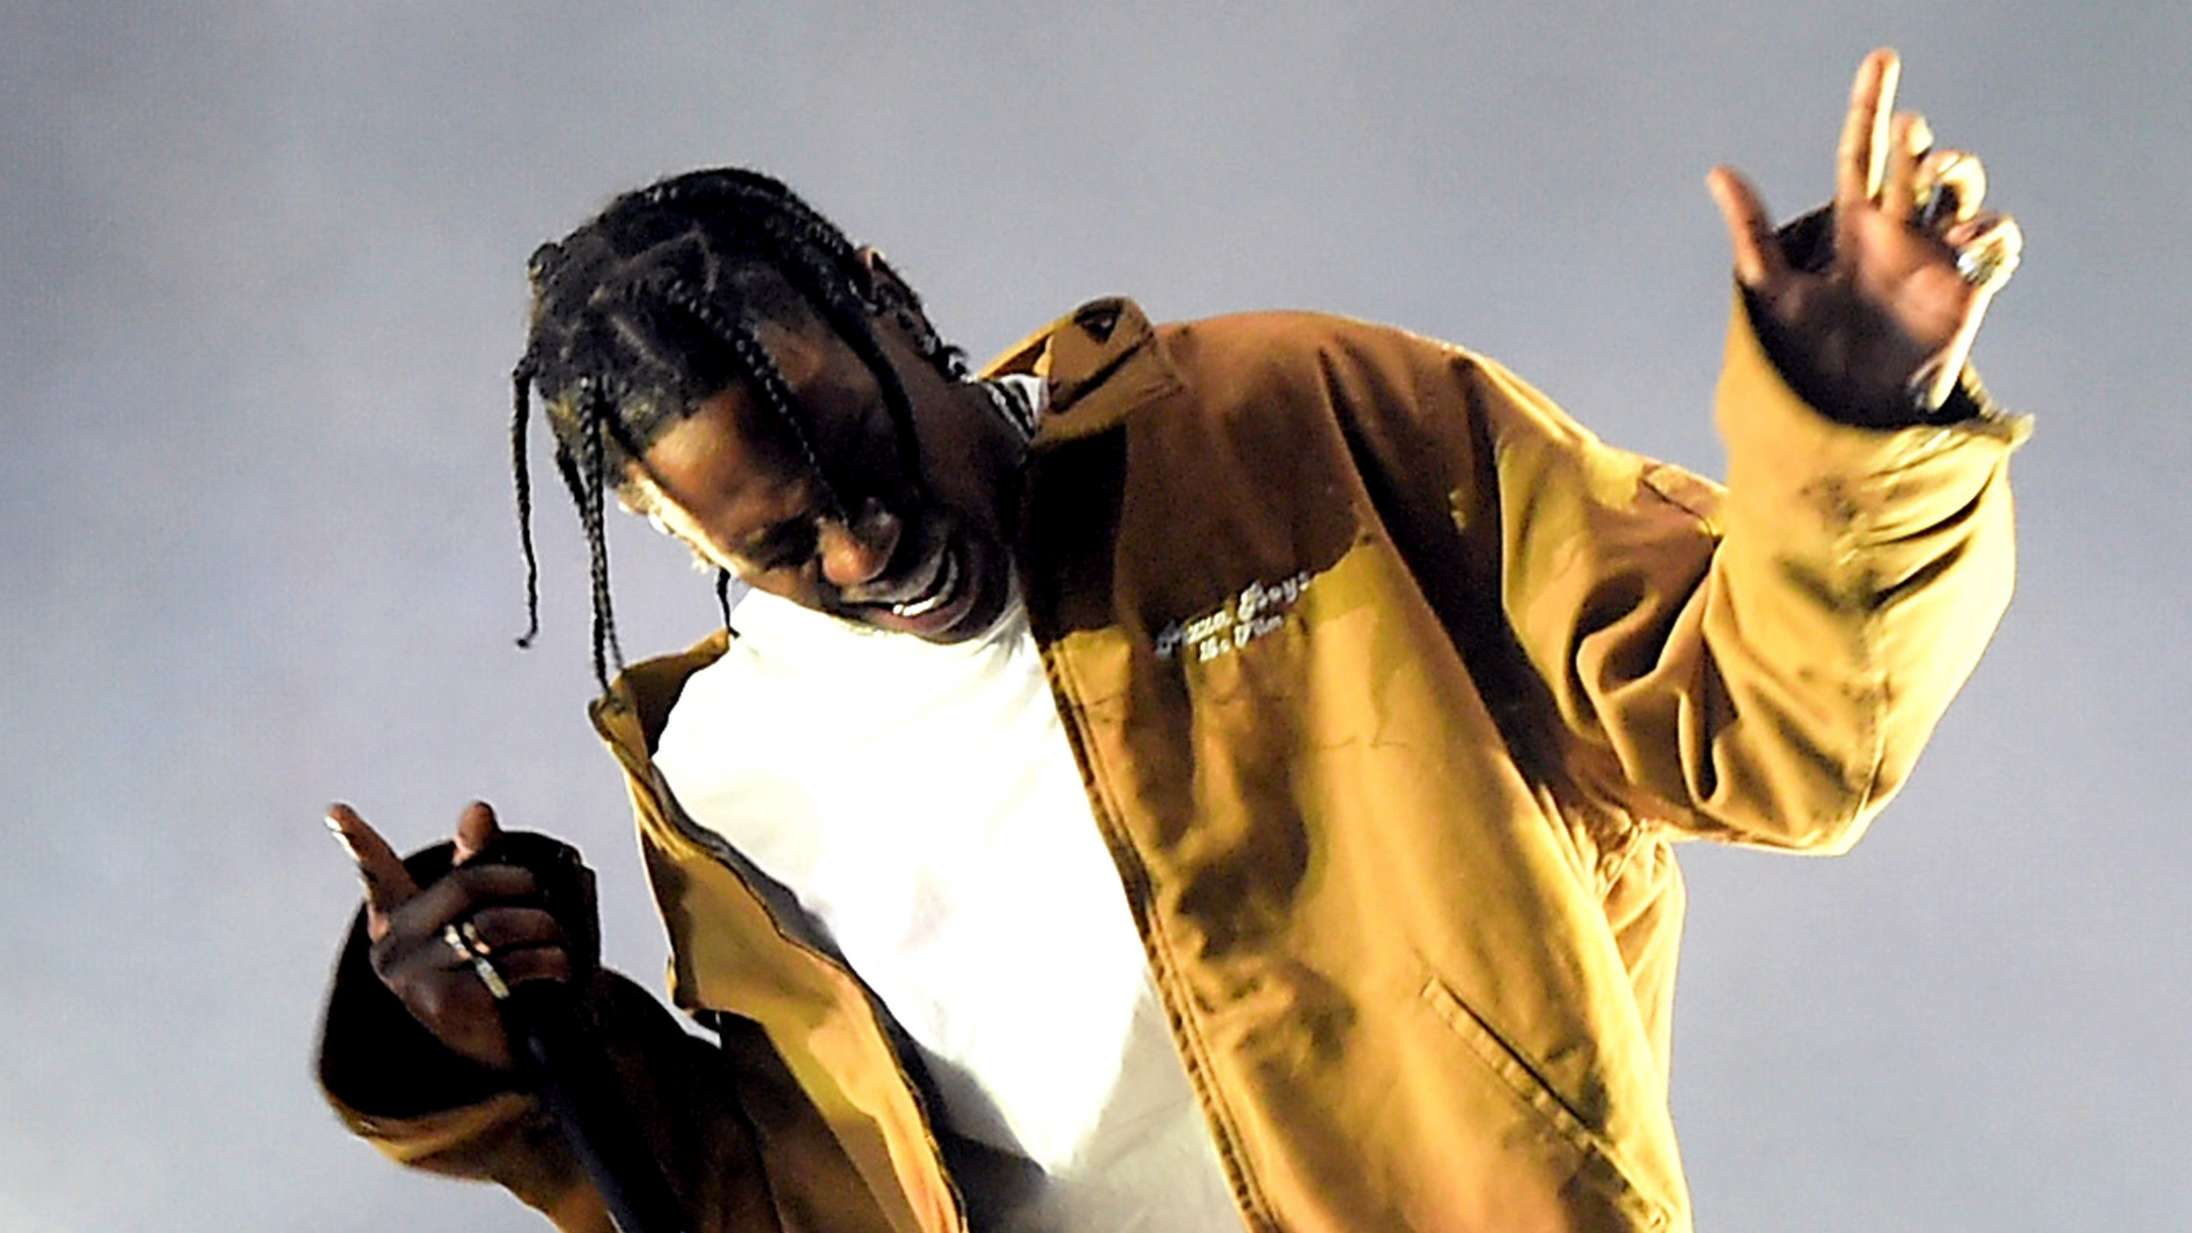 Efter spektakulær 'Fortnite'-premiere: Hør Travis Scott og Kid Cudis 'The Scotts'